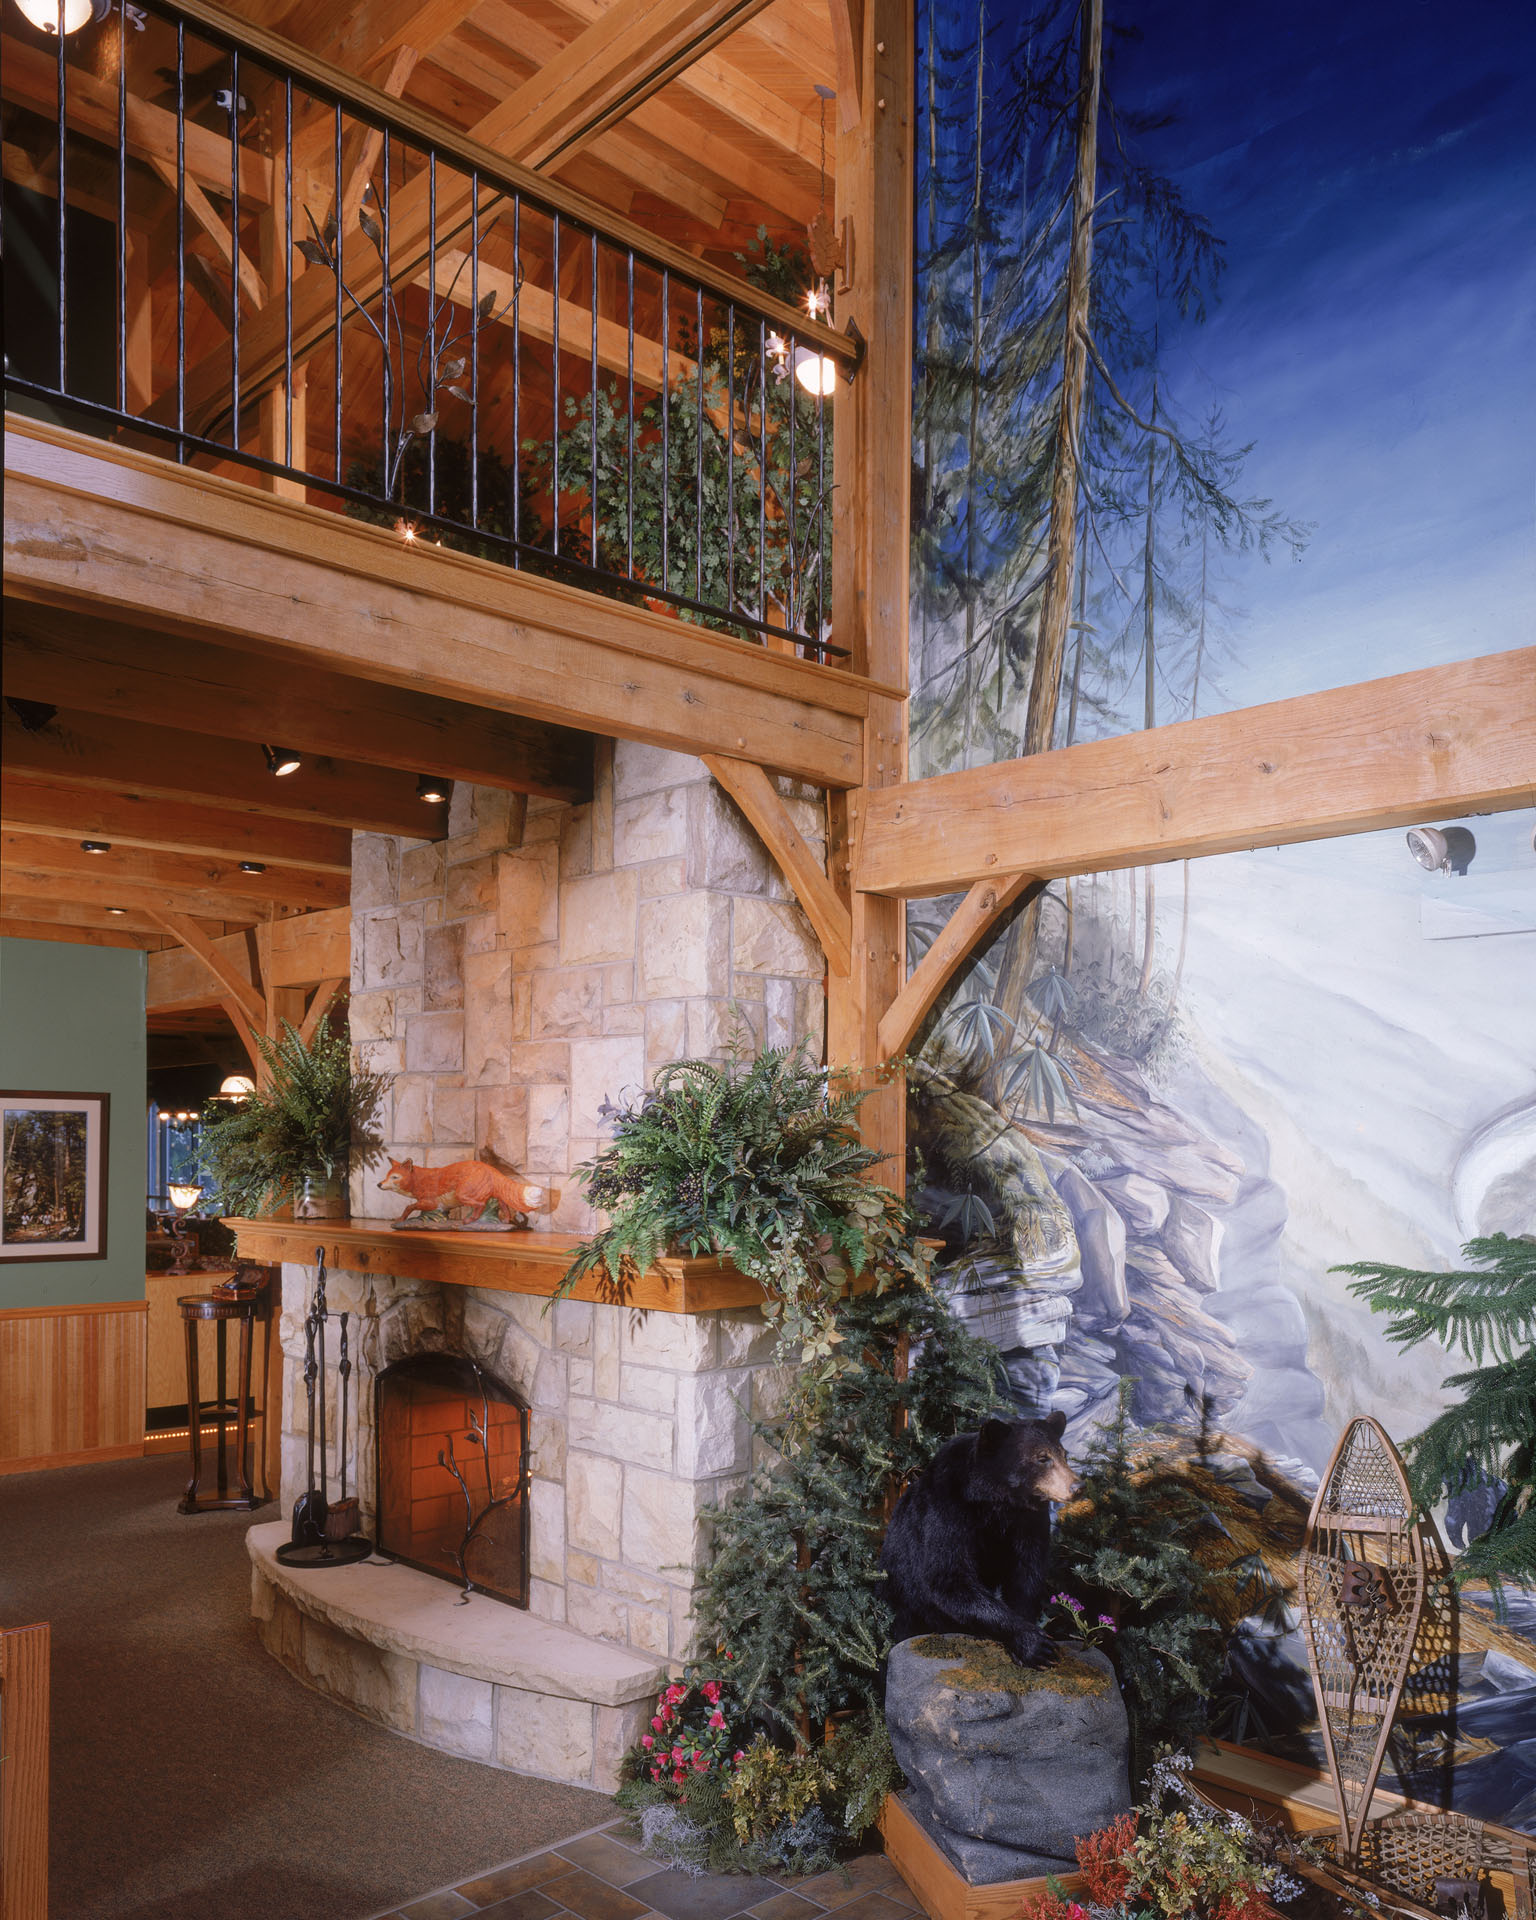 Pin by Hearthstone Homes, Inc. on Oak Restaurant Grille